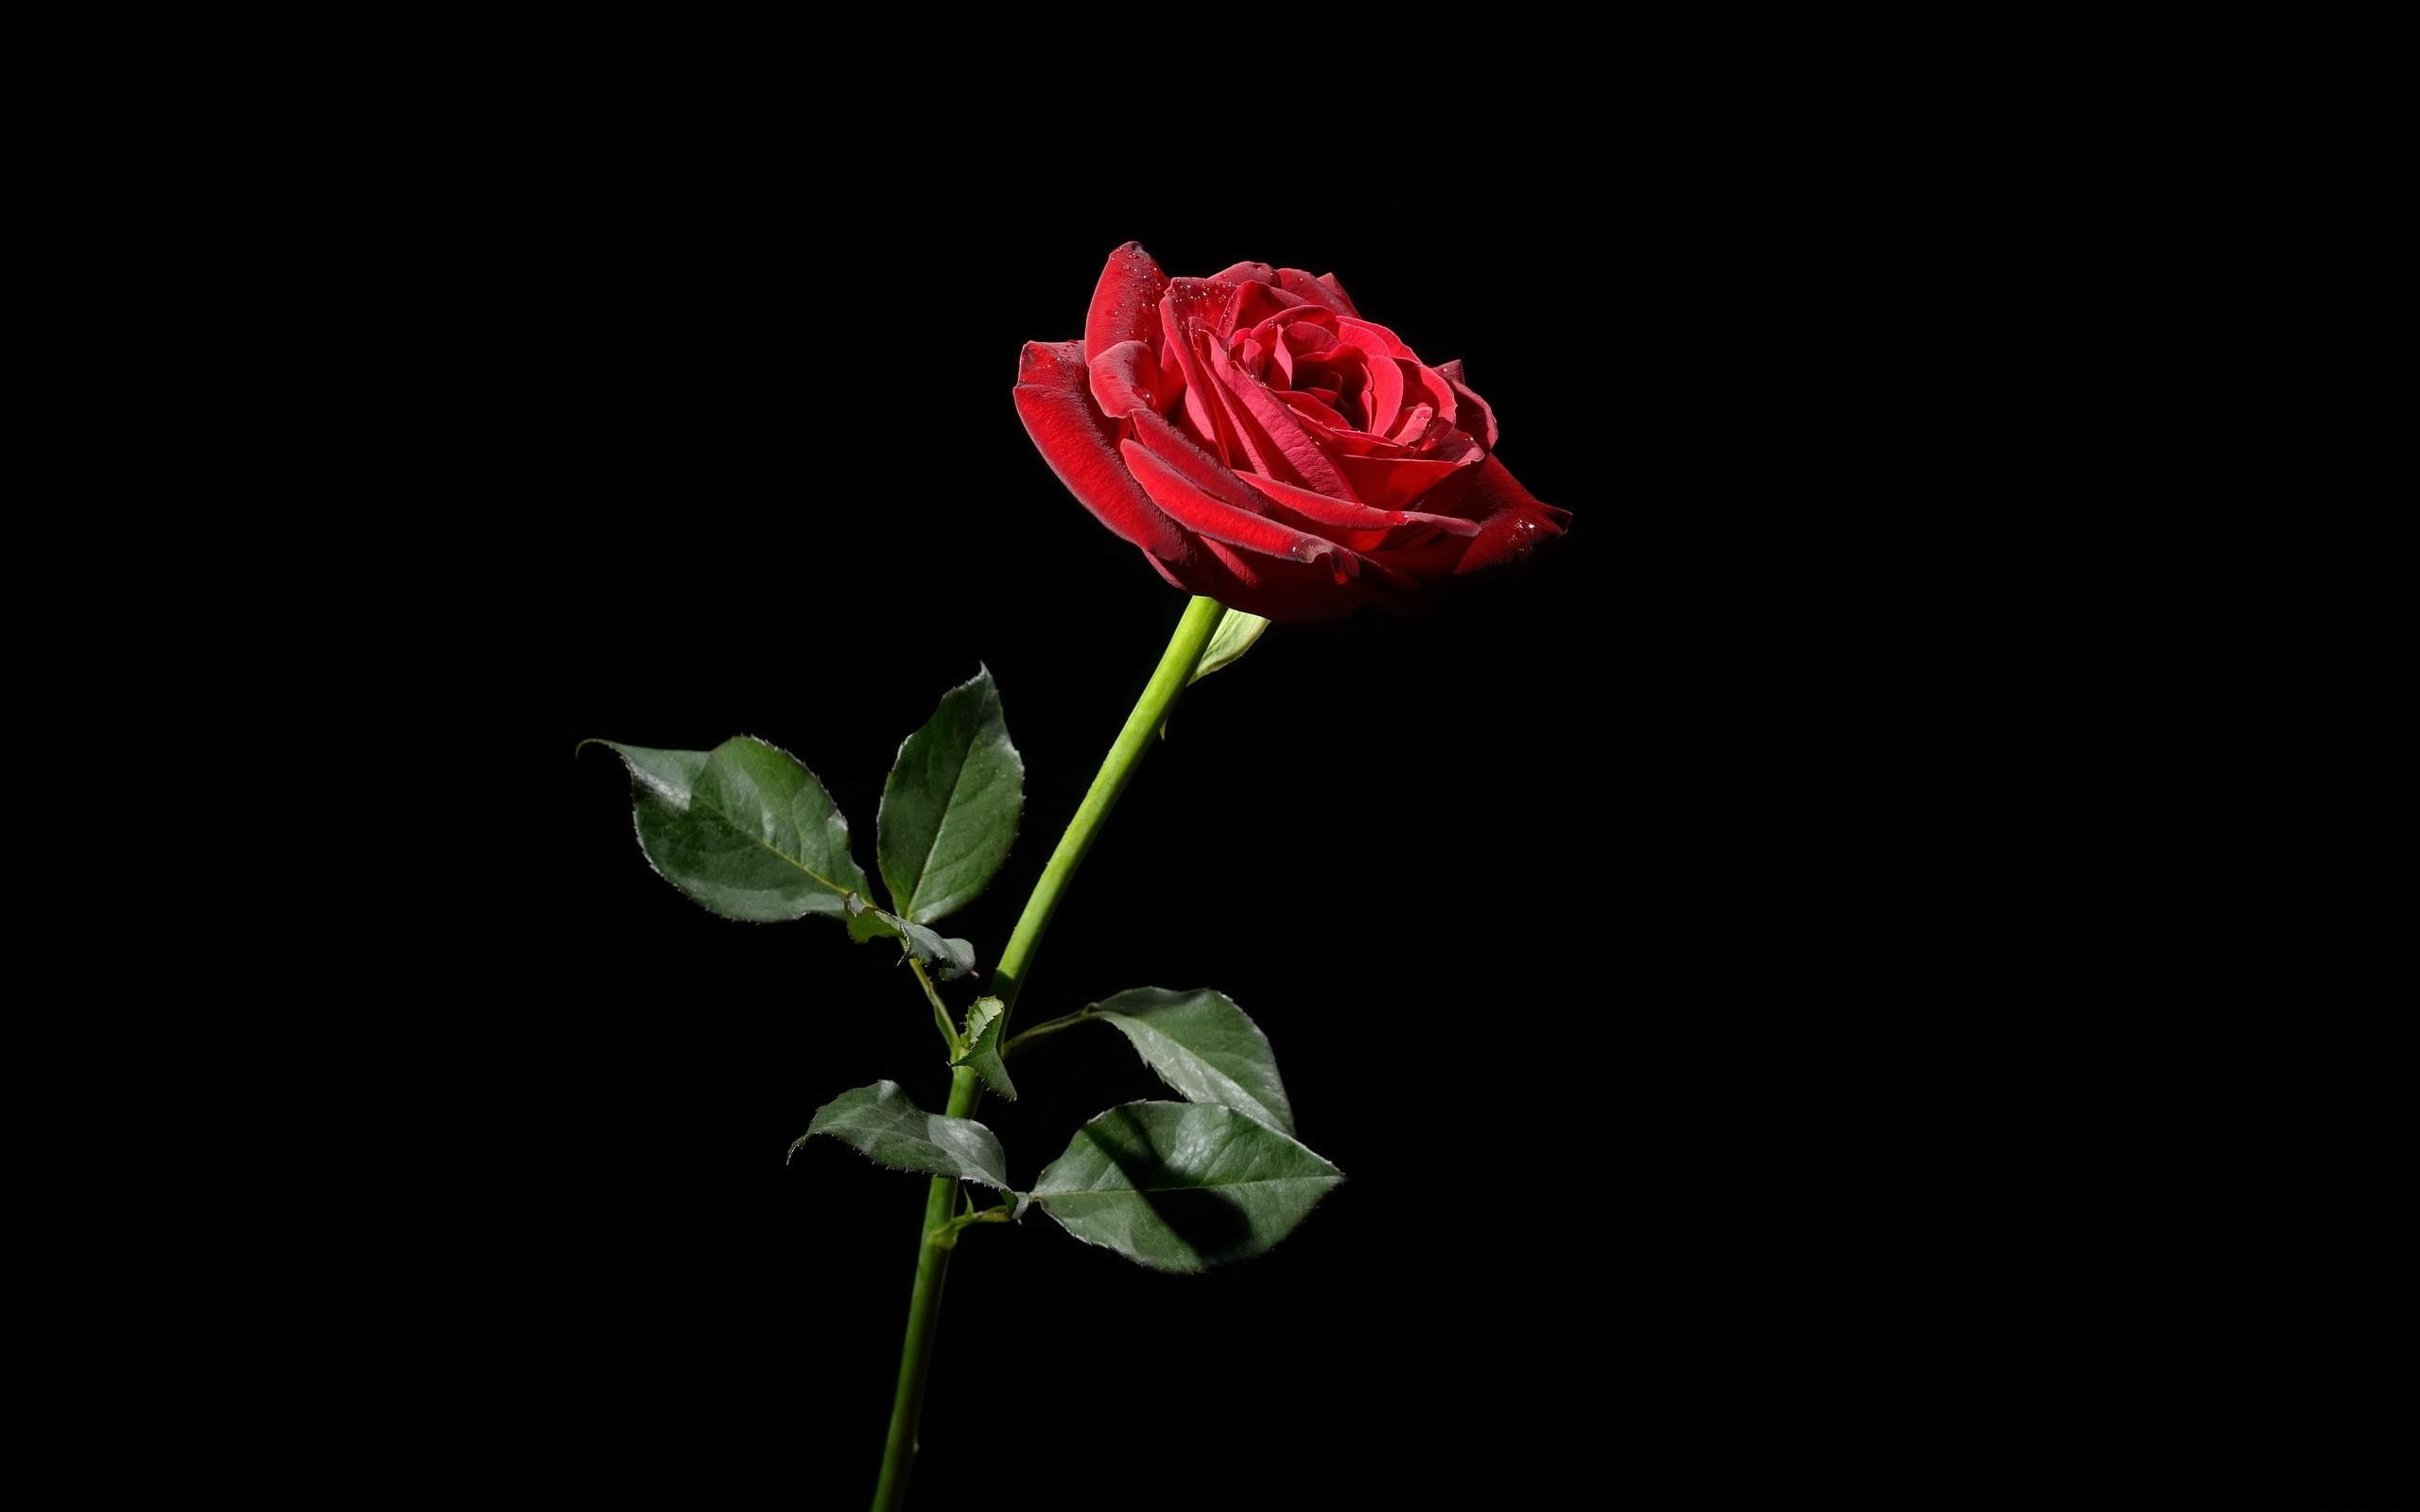 Black And Red Rose Wallpaper 8  The Photos Club  HD